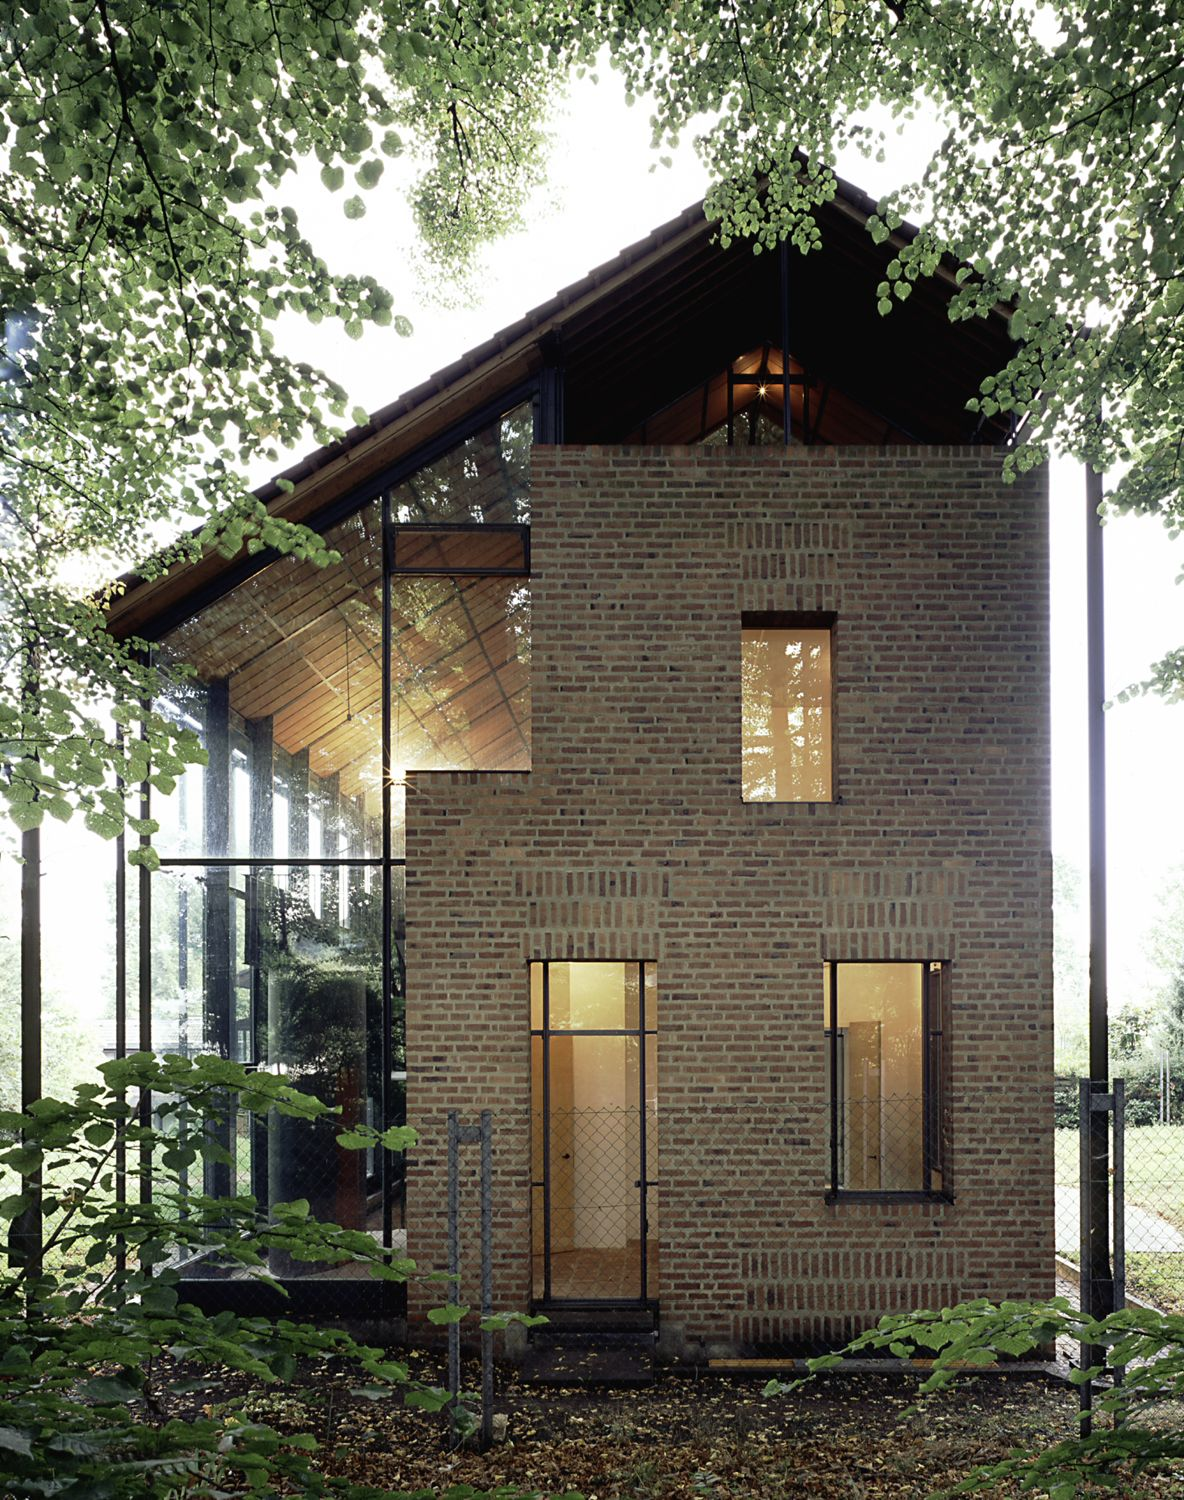 1000+ images about Häuser rchitecture, Log homes ...